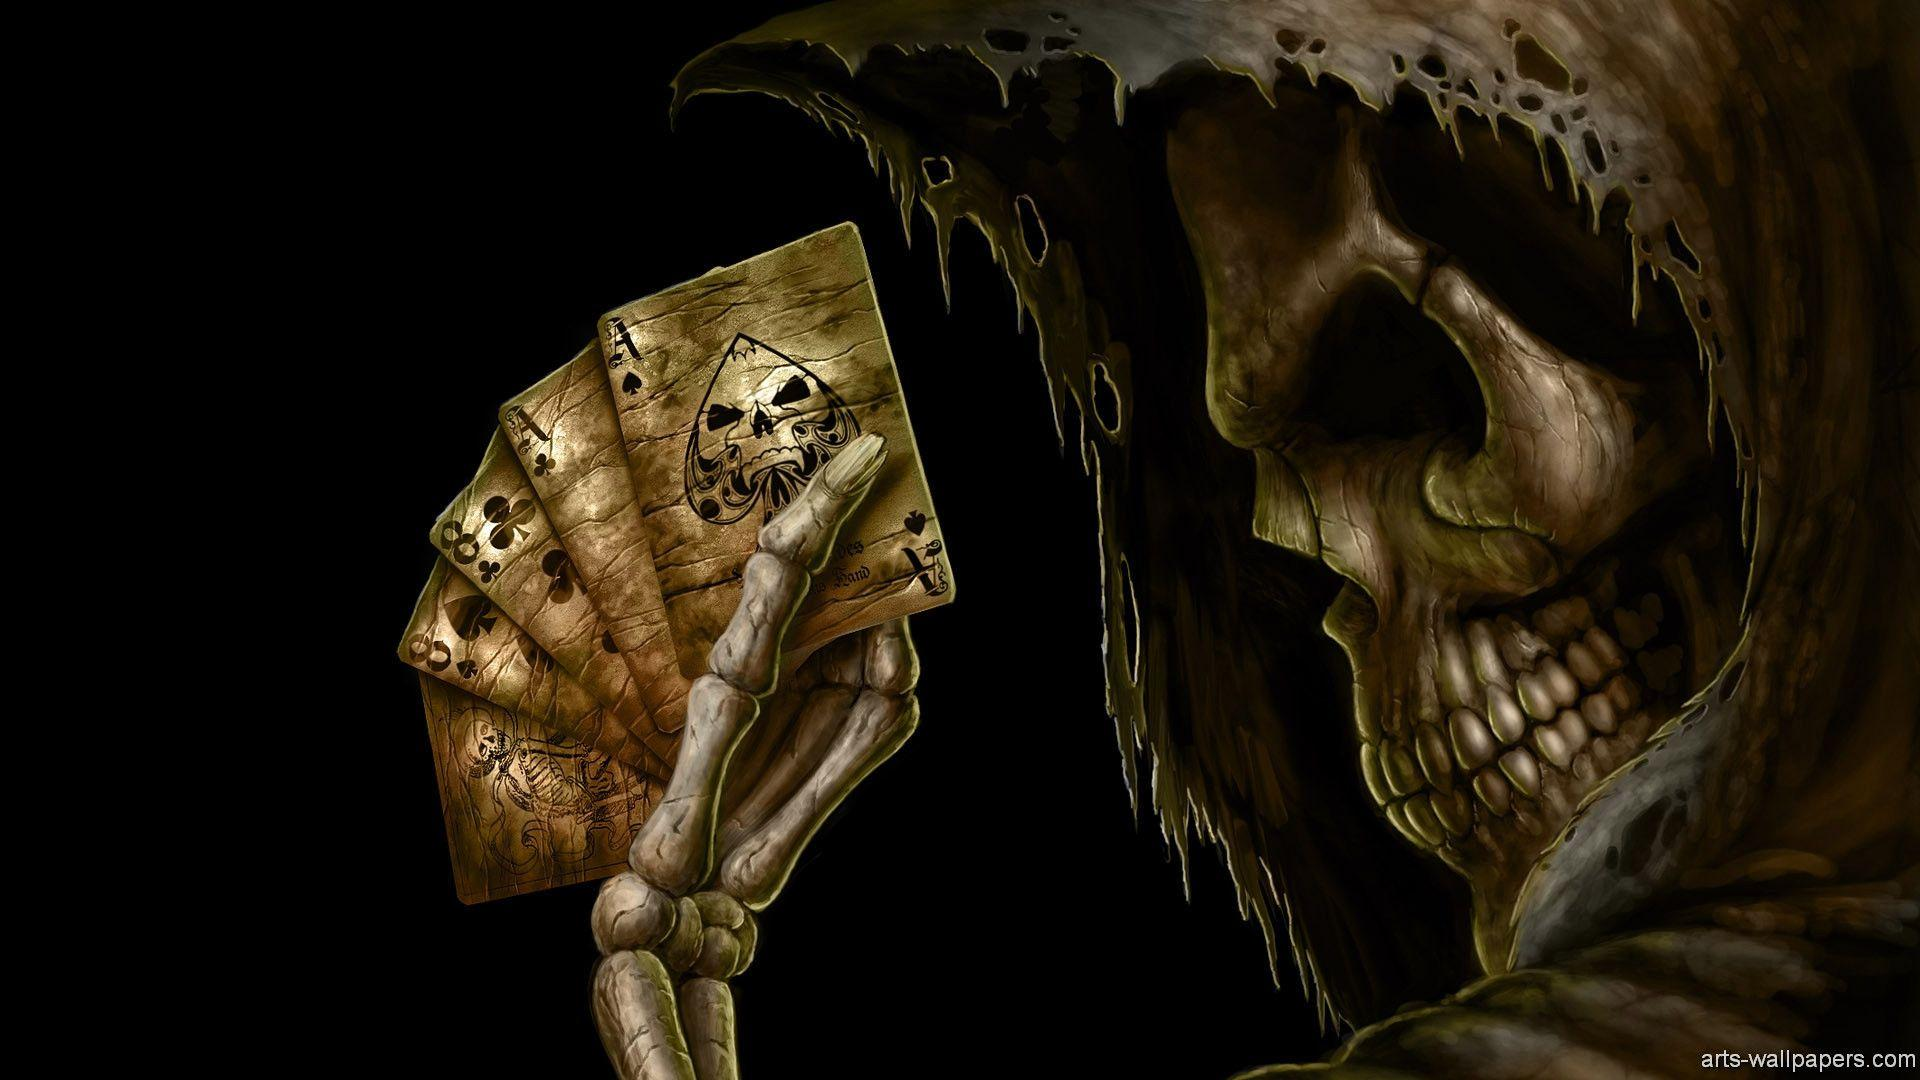 Cool Skull Wallpapers - Top Free Cool